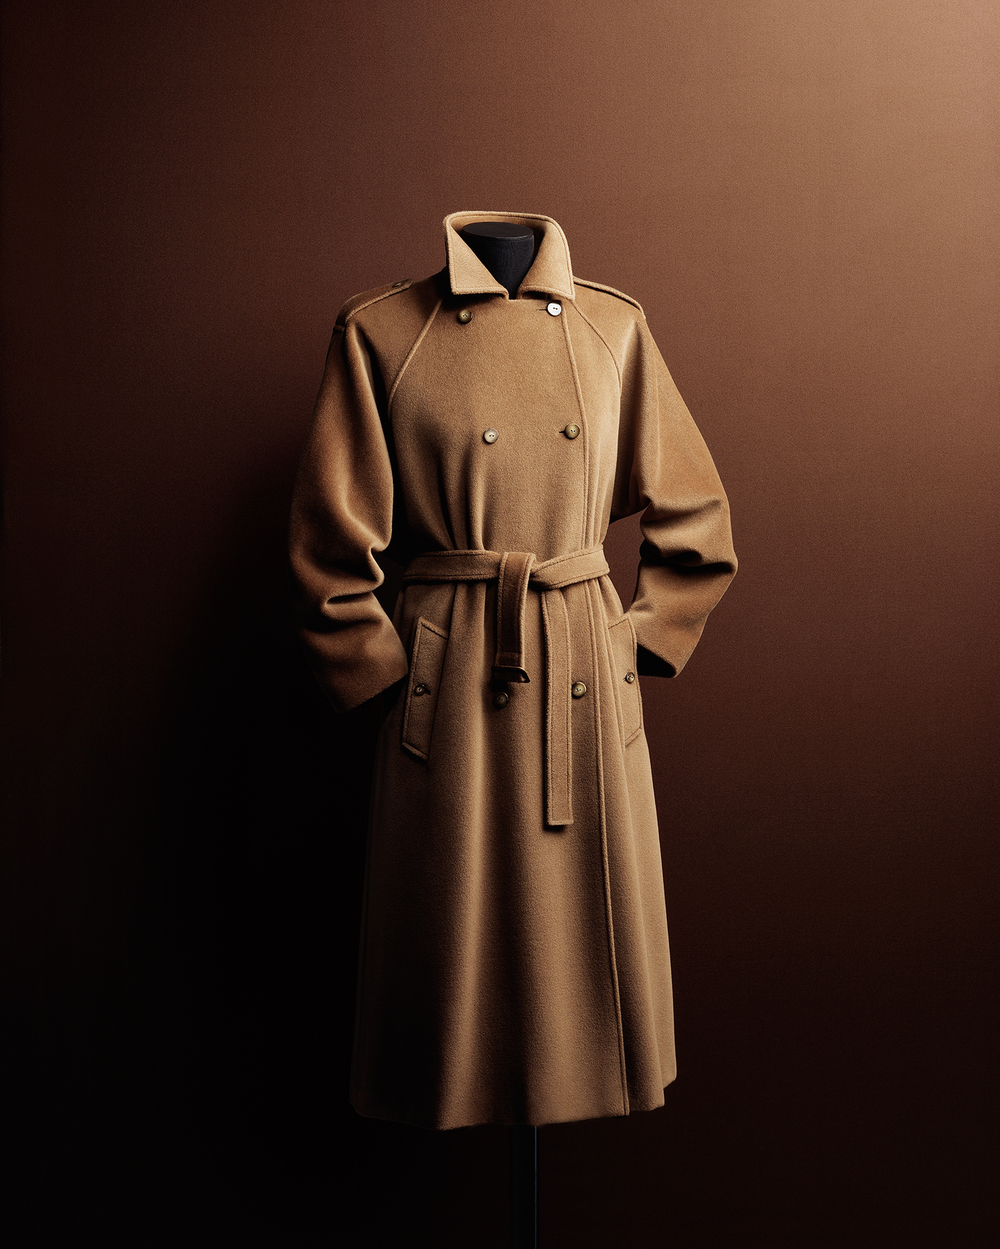 the_tree_mag-coats-by-maxmara-by-dhyan-bodha-derasmo-g-90.jpg